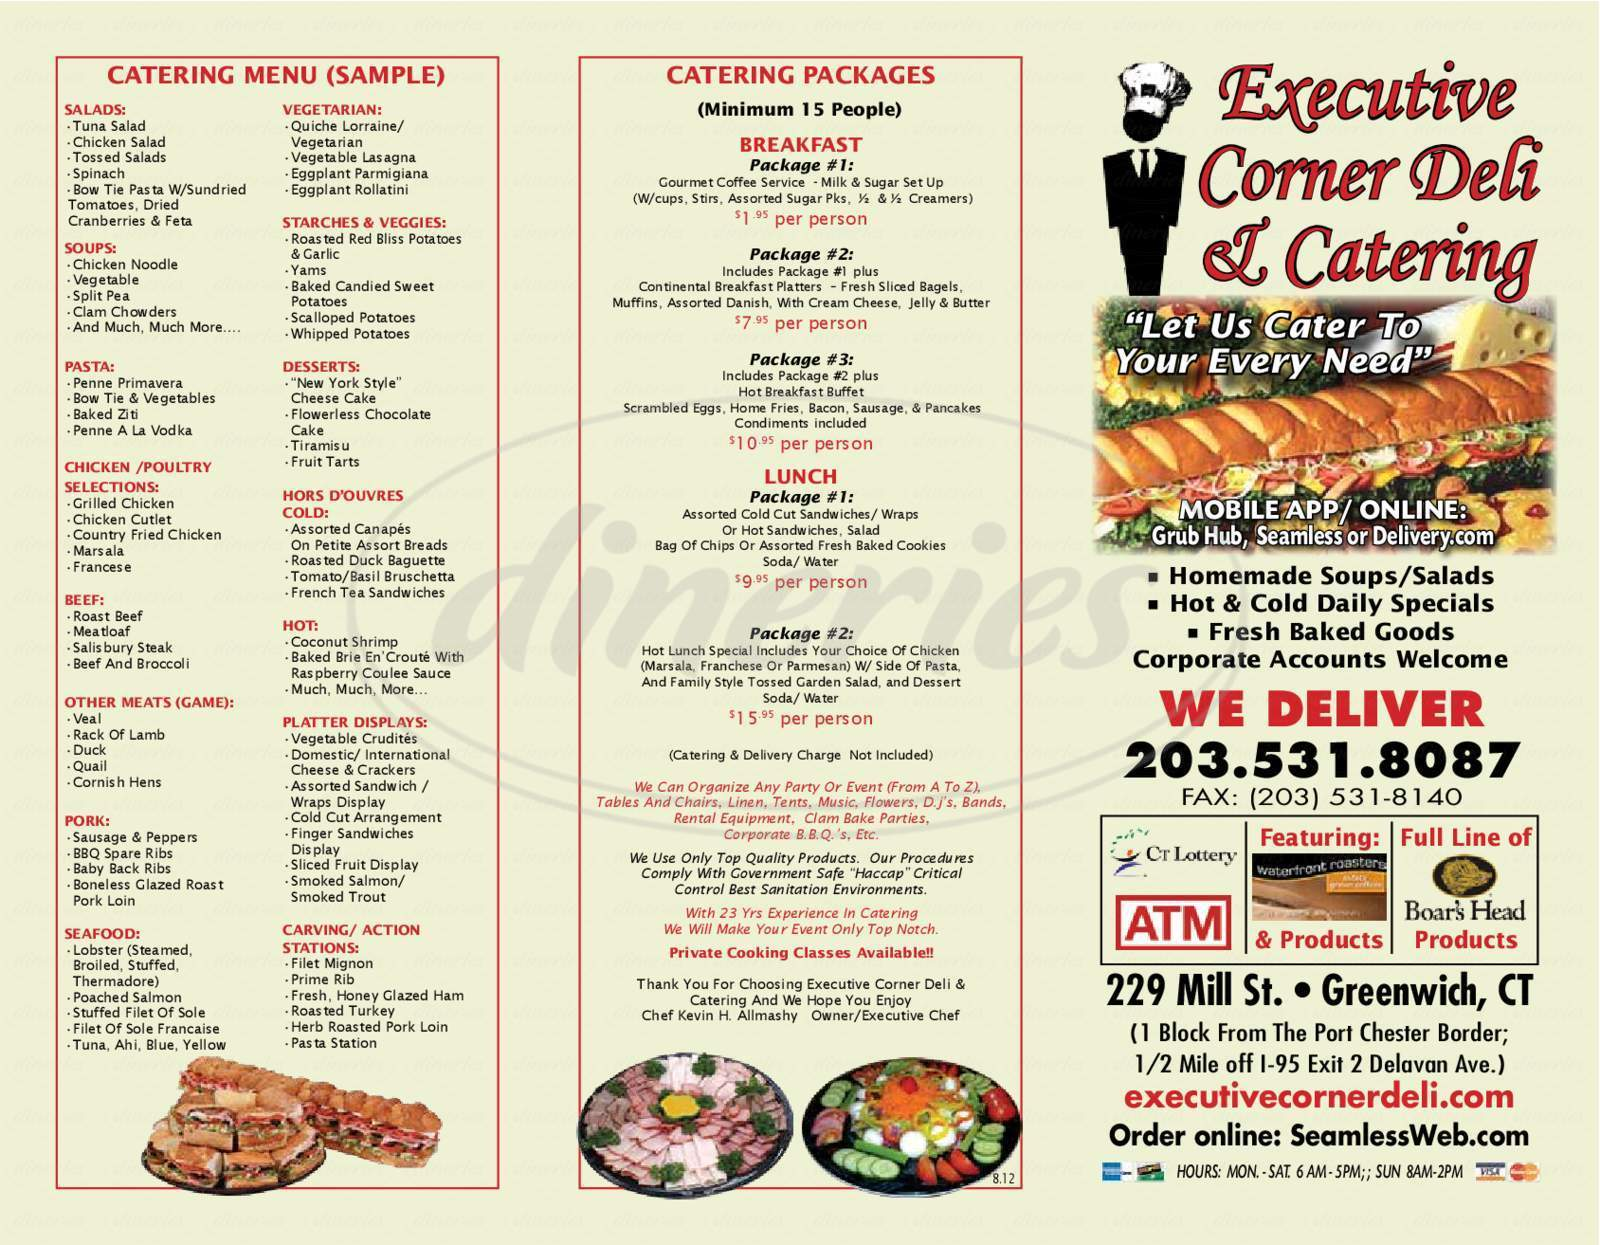 menu for Executive Corner Deli & Catering